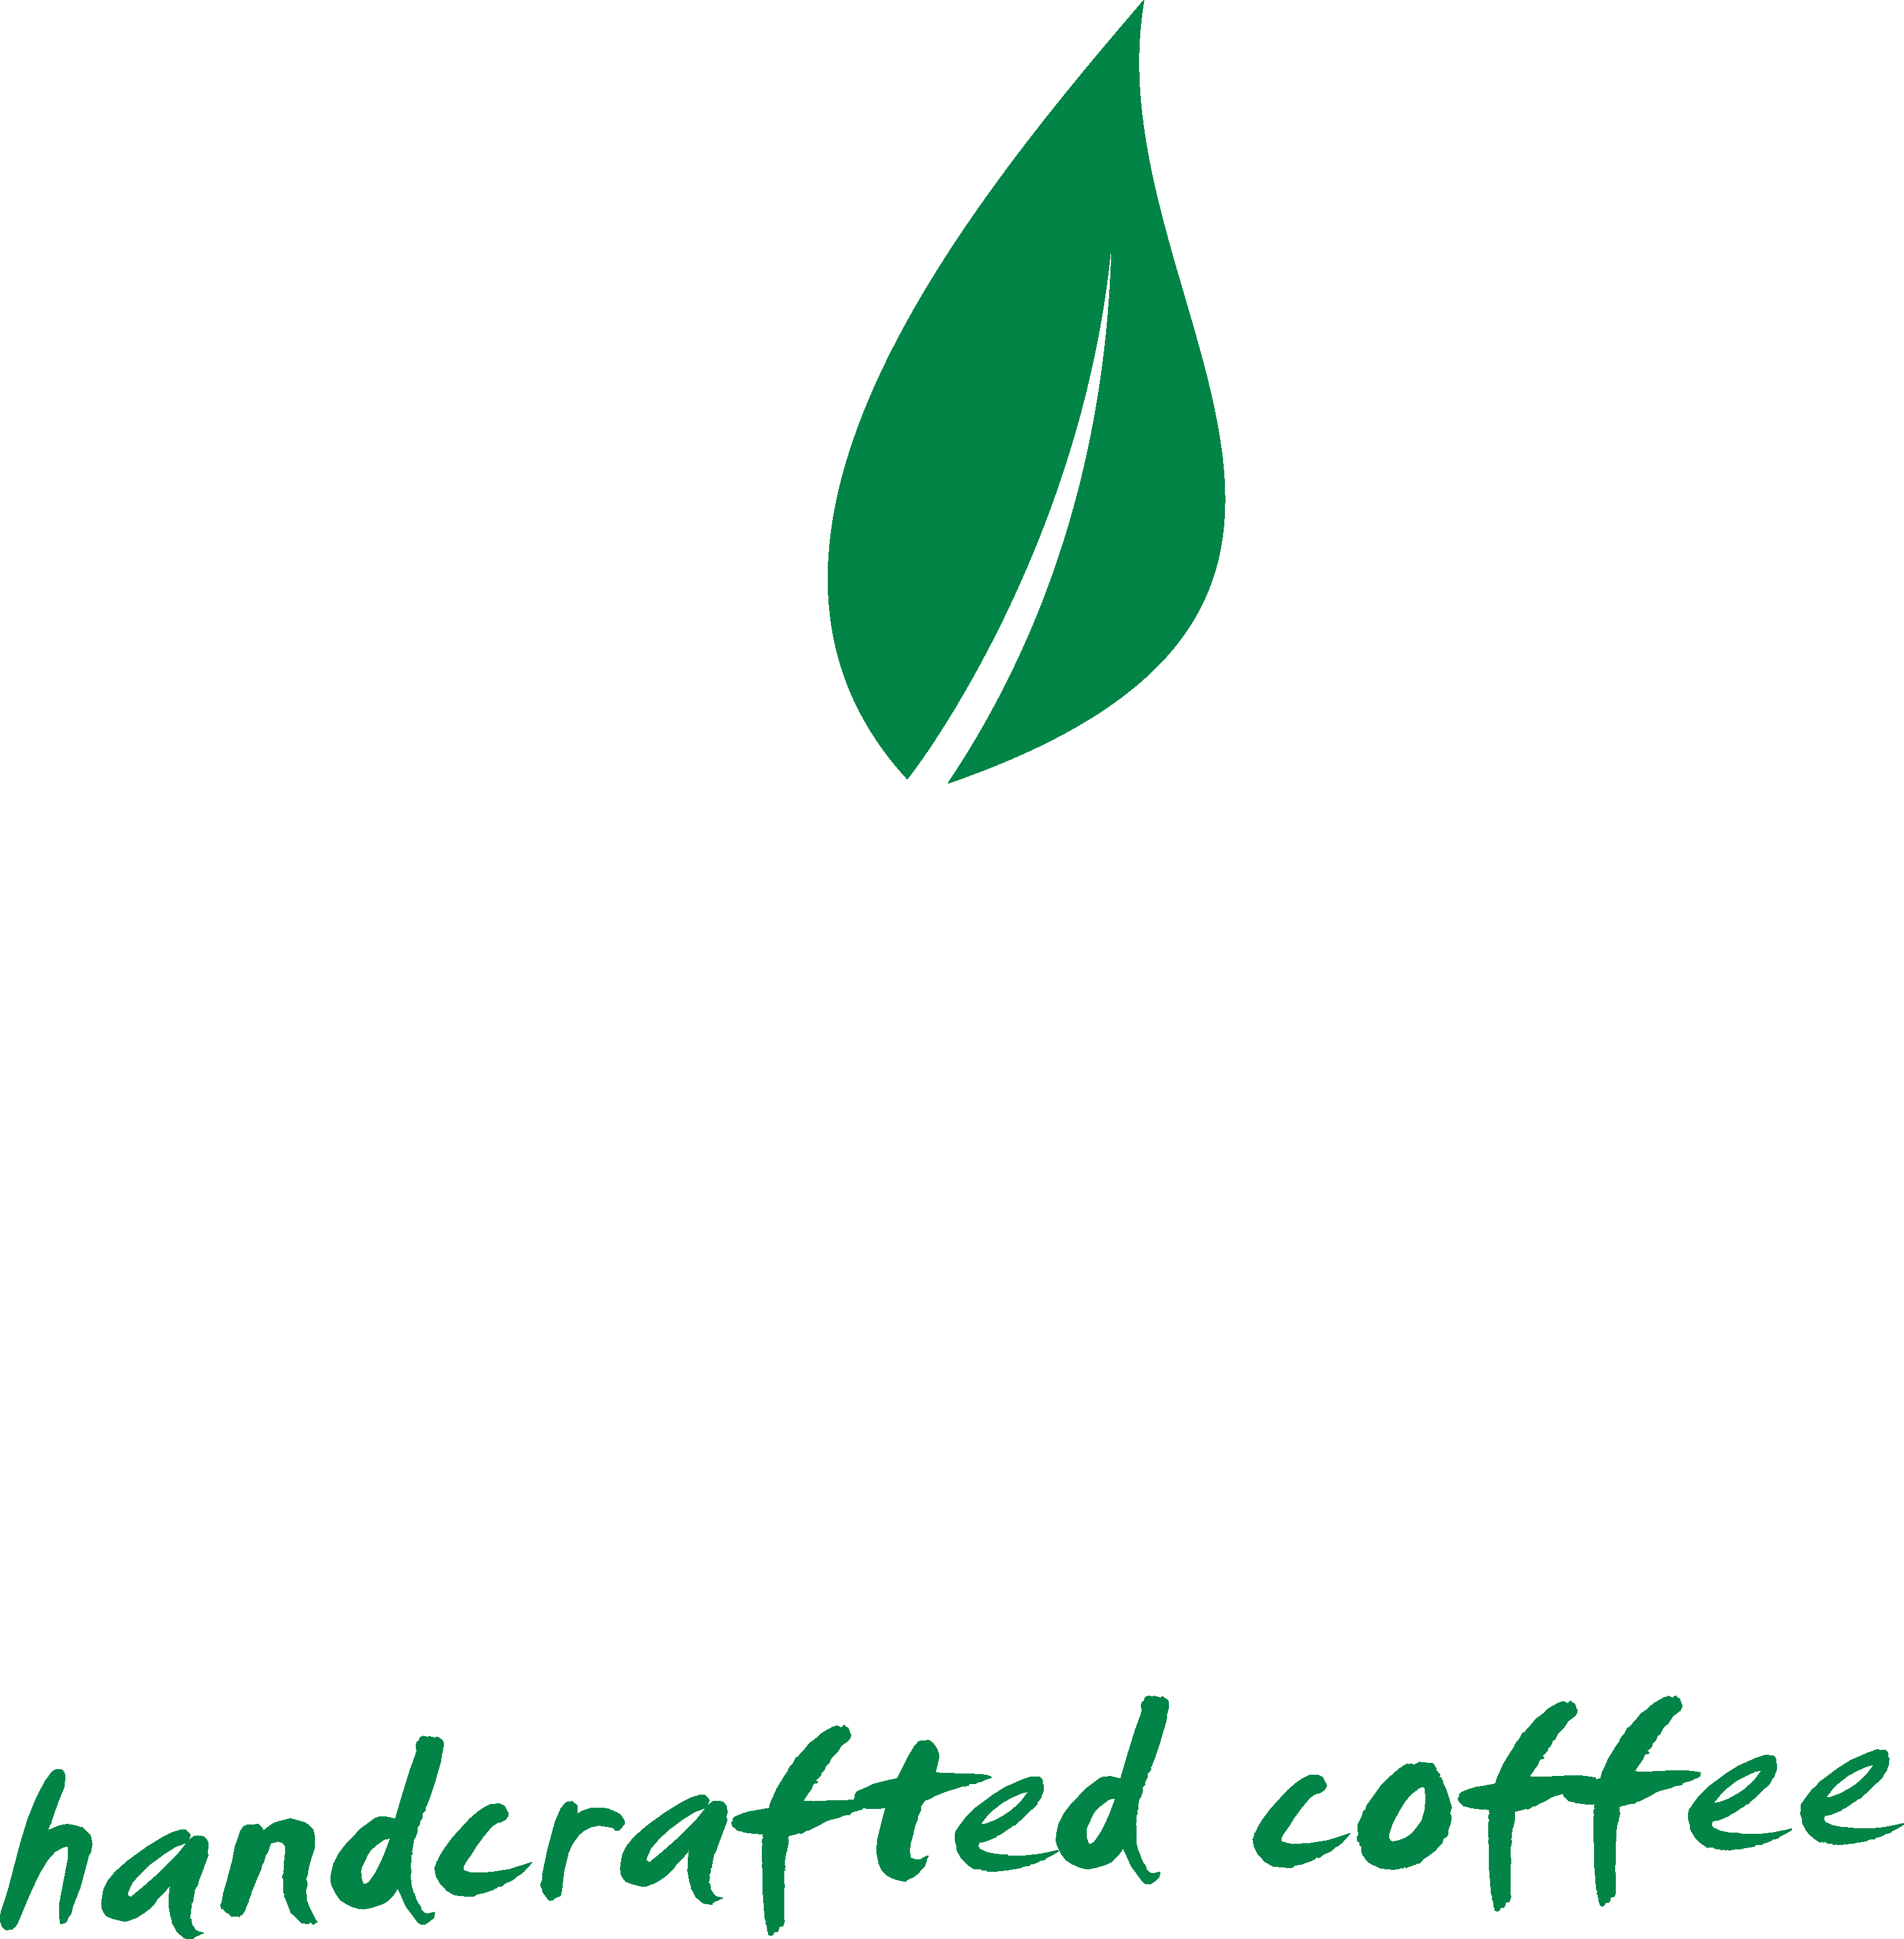 Mantle & Moon